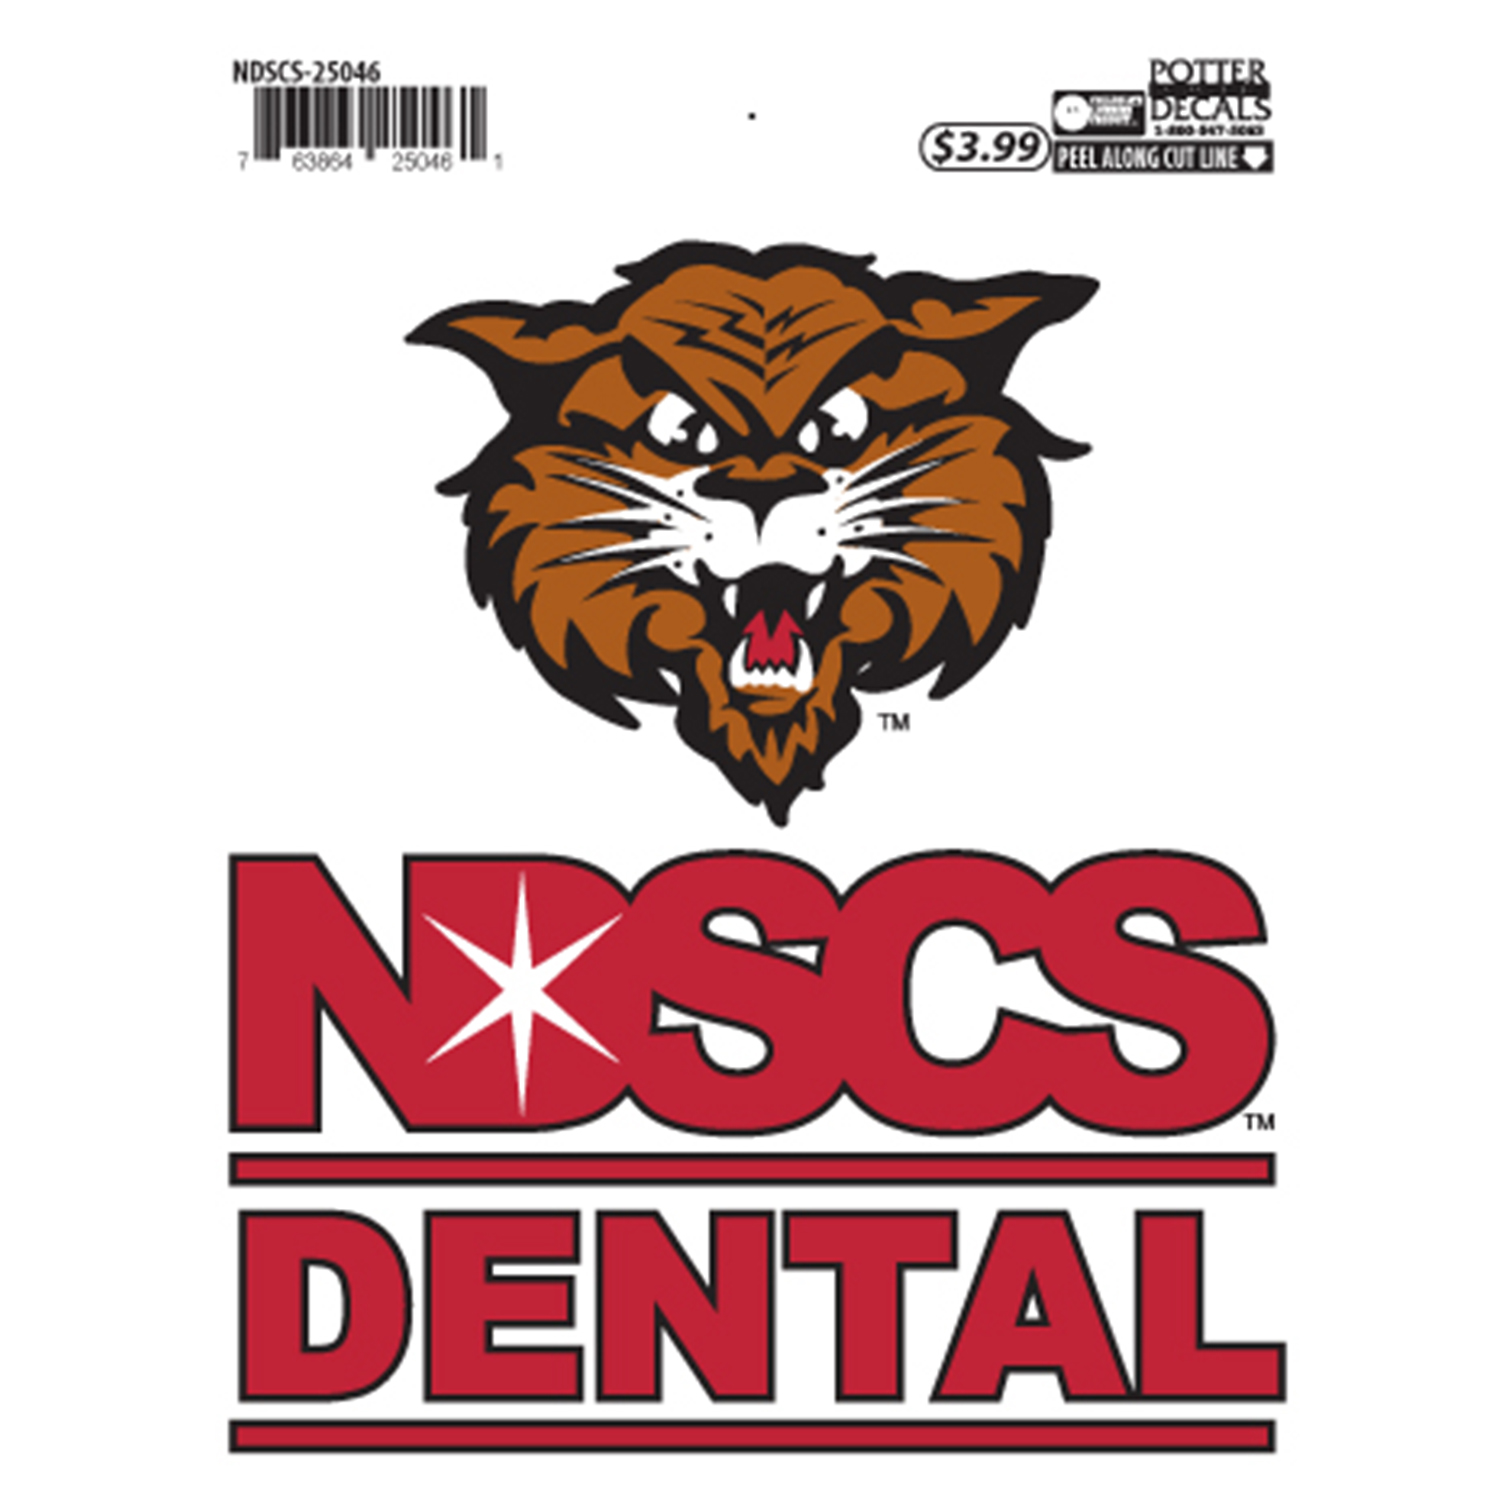 "Image For ""Dental"" Decal by Potter"